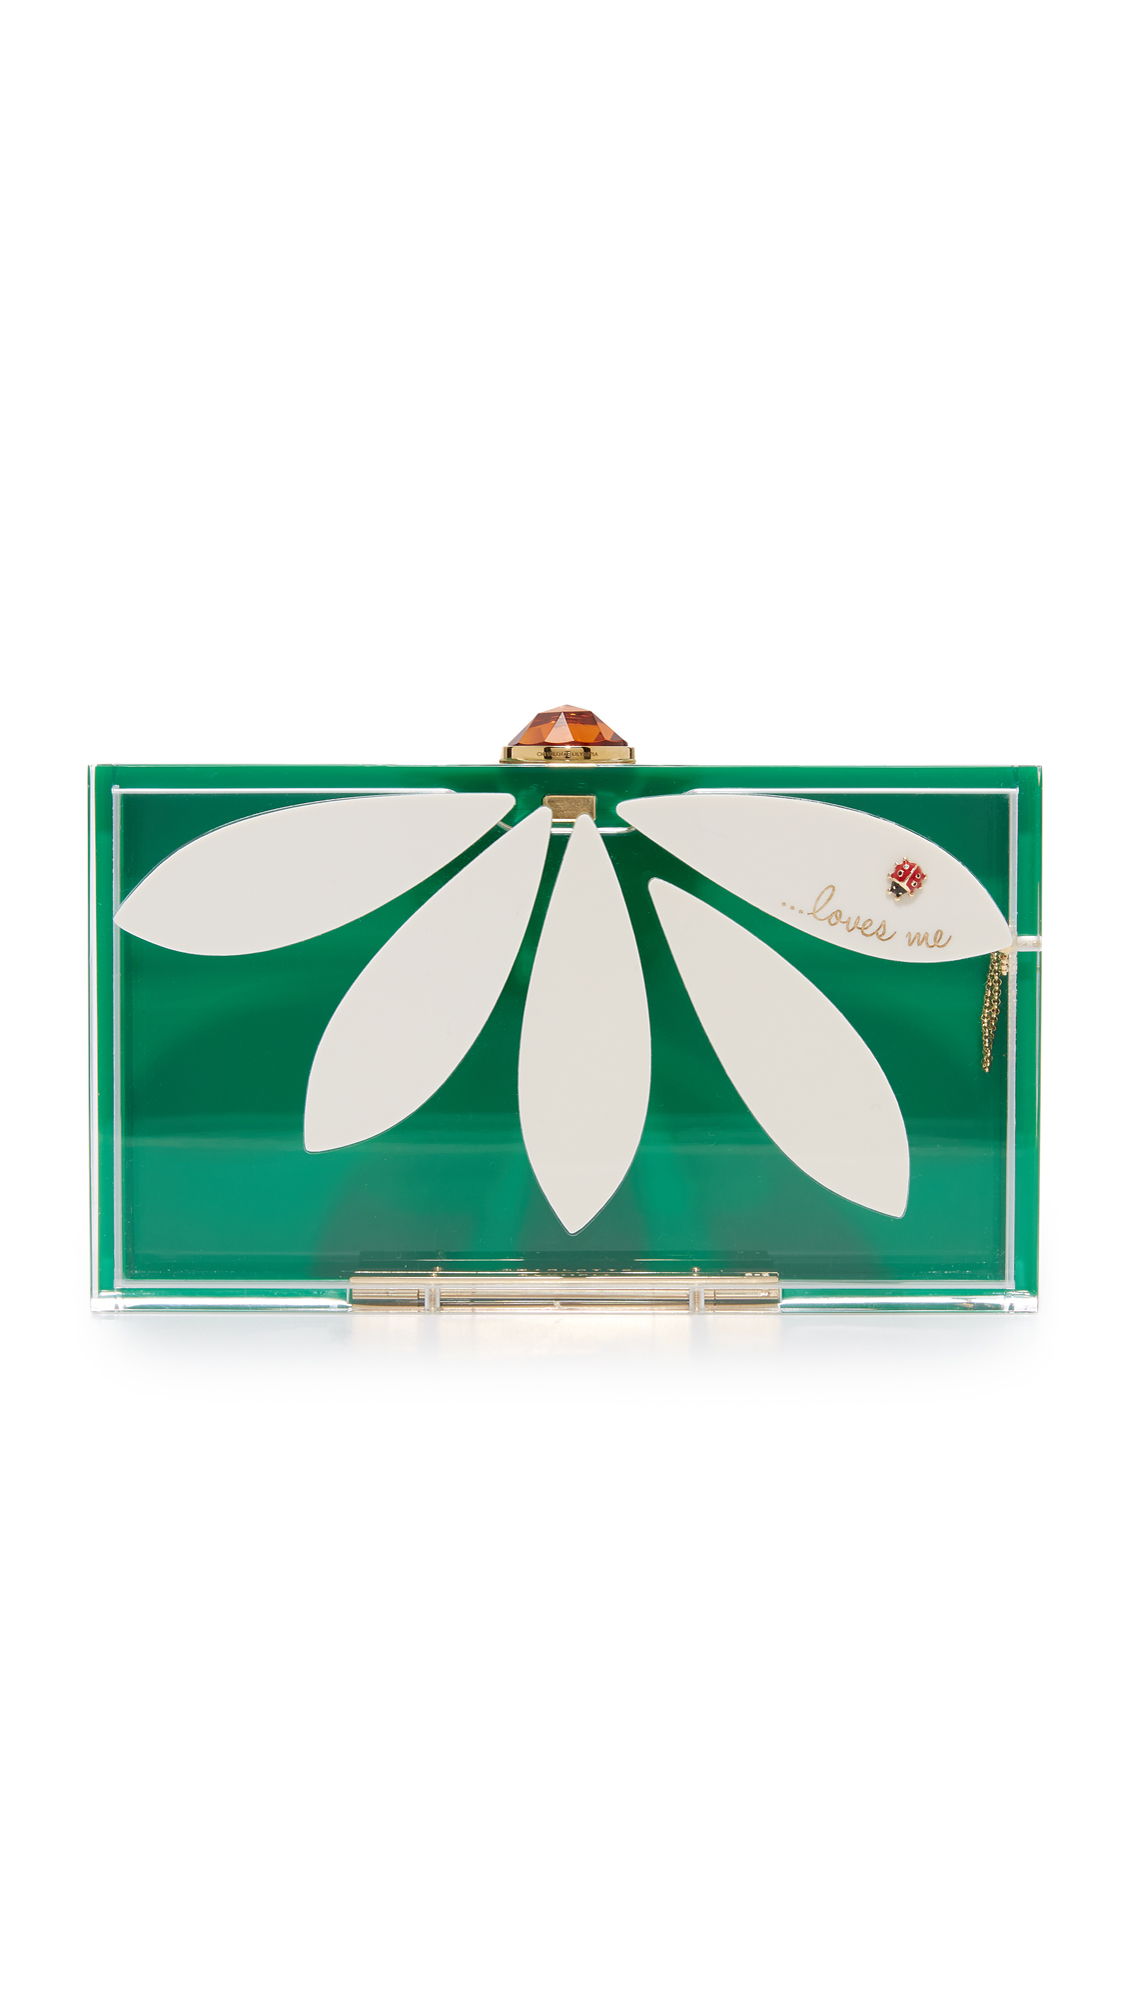 Charlotte Olympia Pandora Loves Me Clutch Box - White/Verdant Green